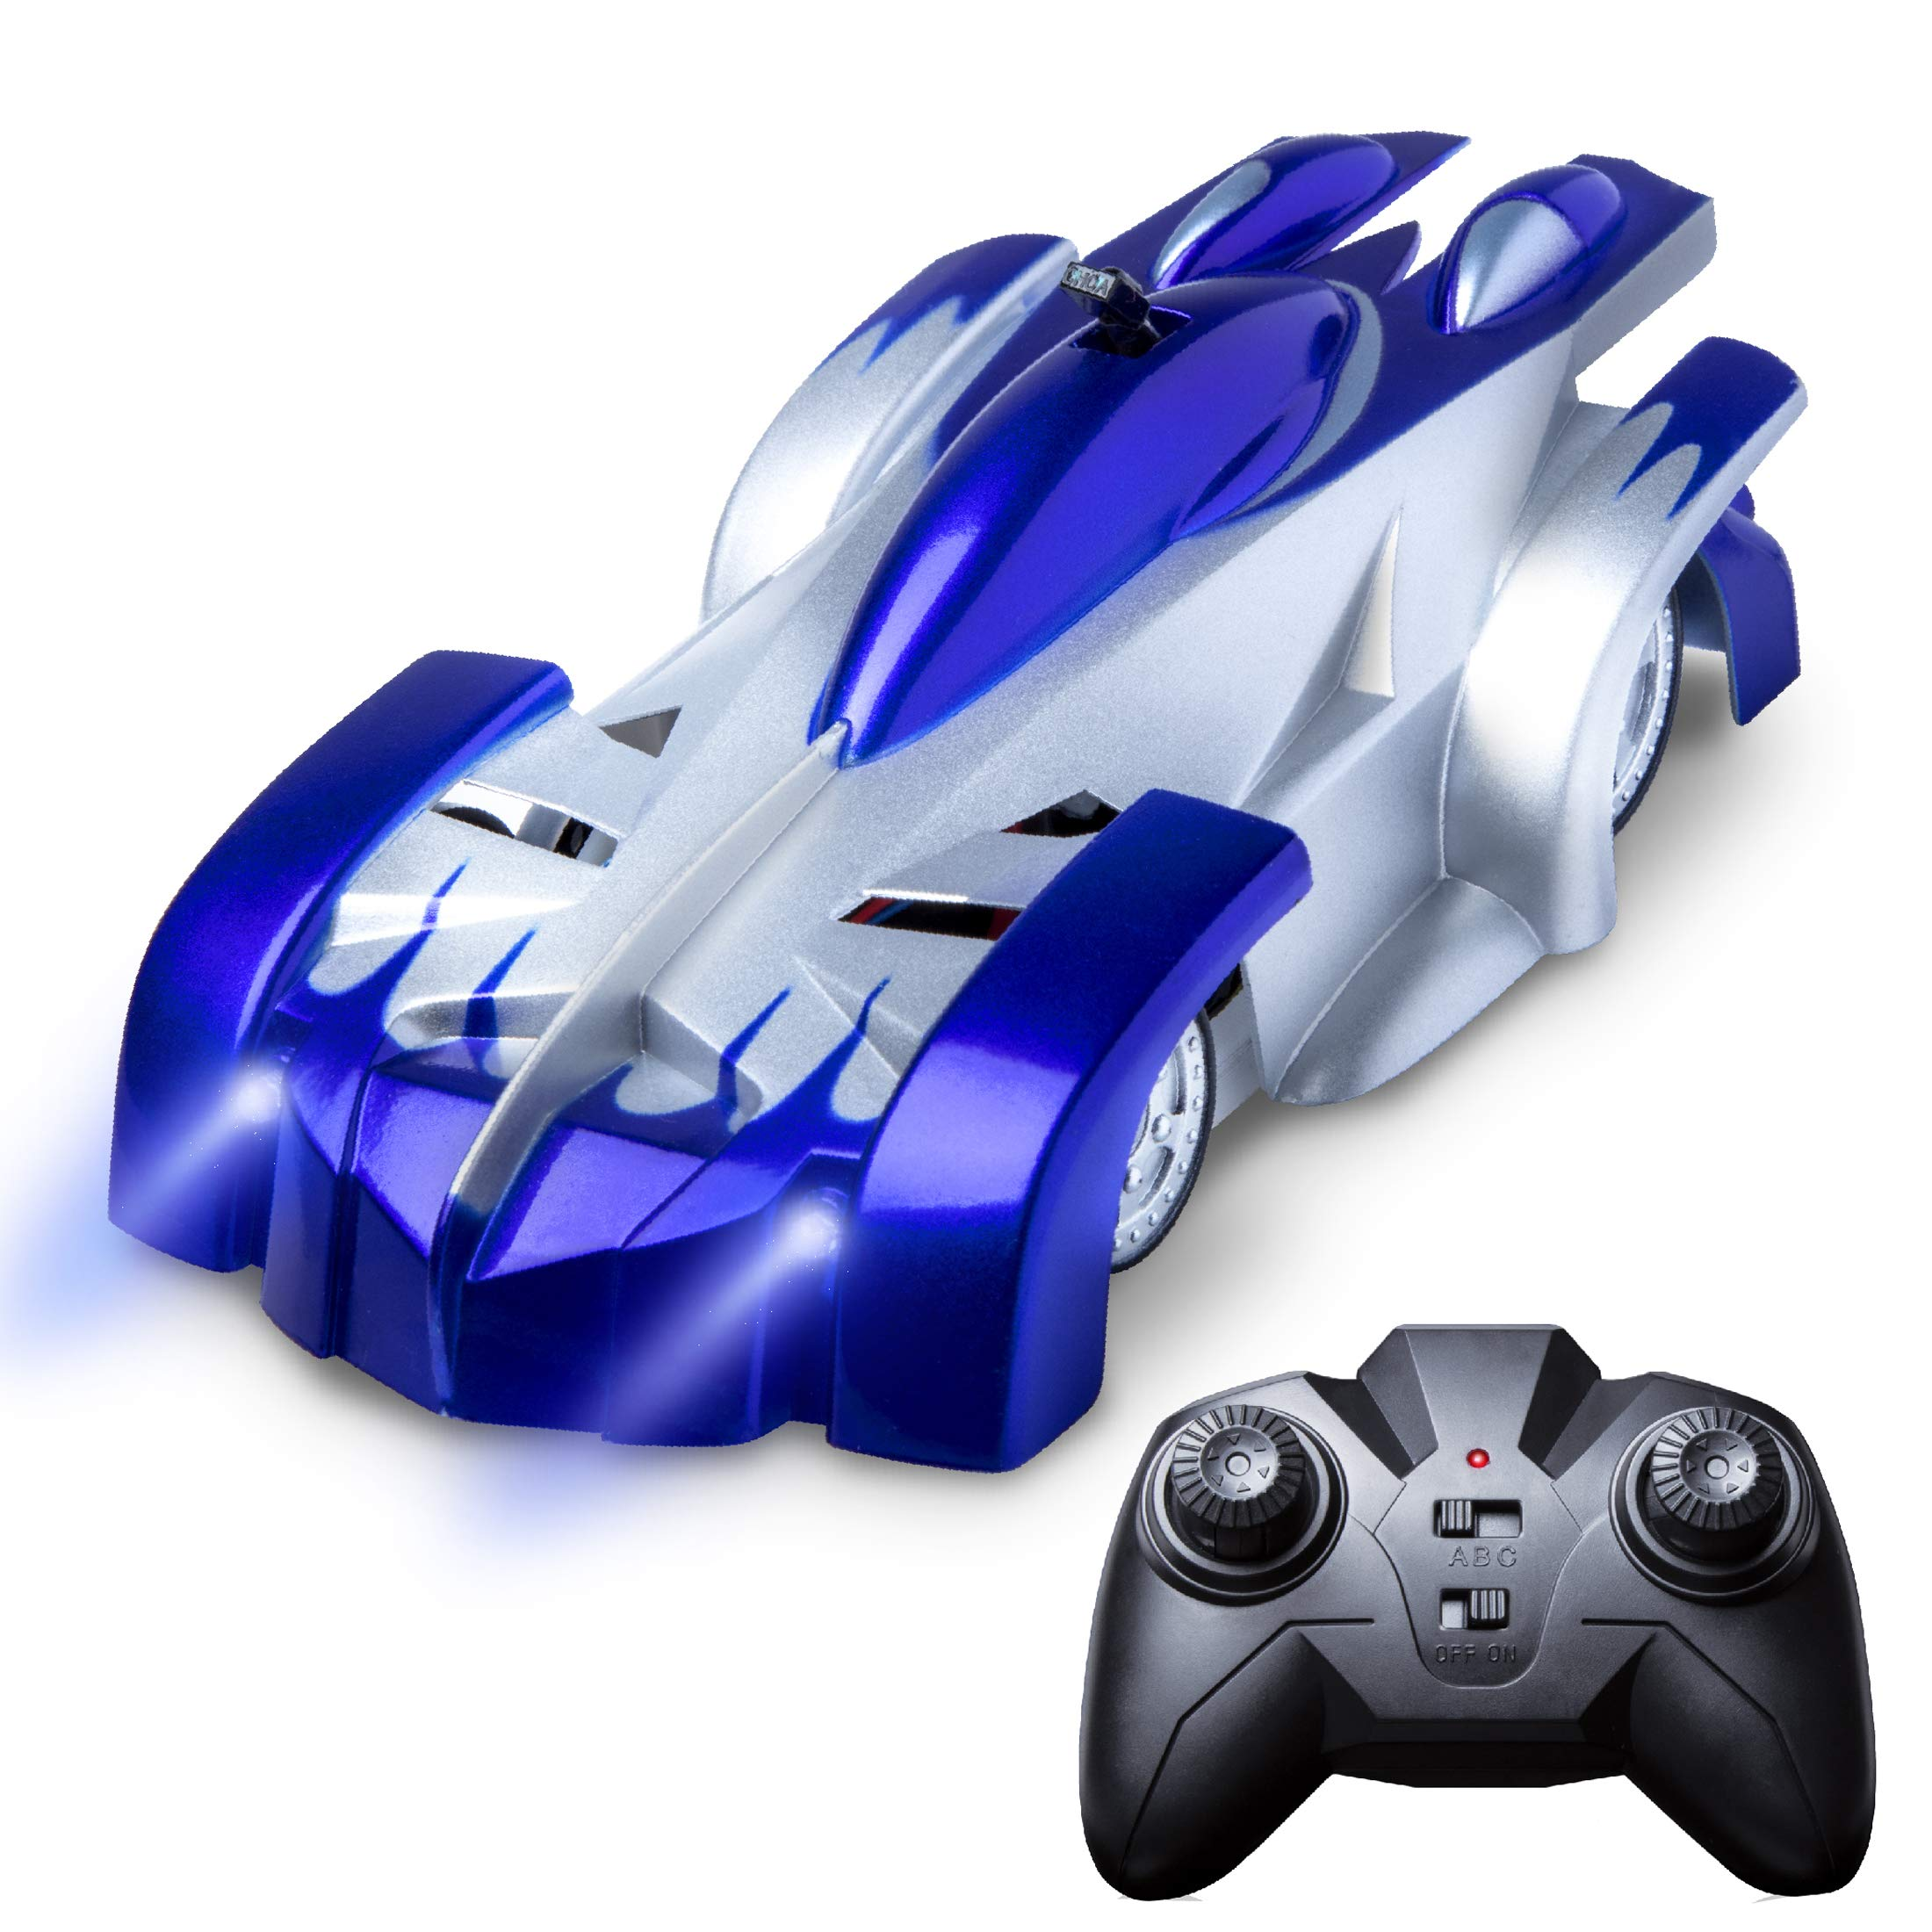 Force1 Gravity Defying RC Car - Remote Control Car for Floor or Wall Rechargeable Fast RC Car (Blue)